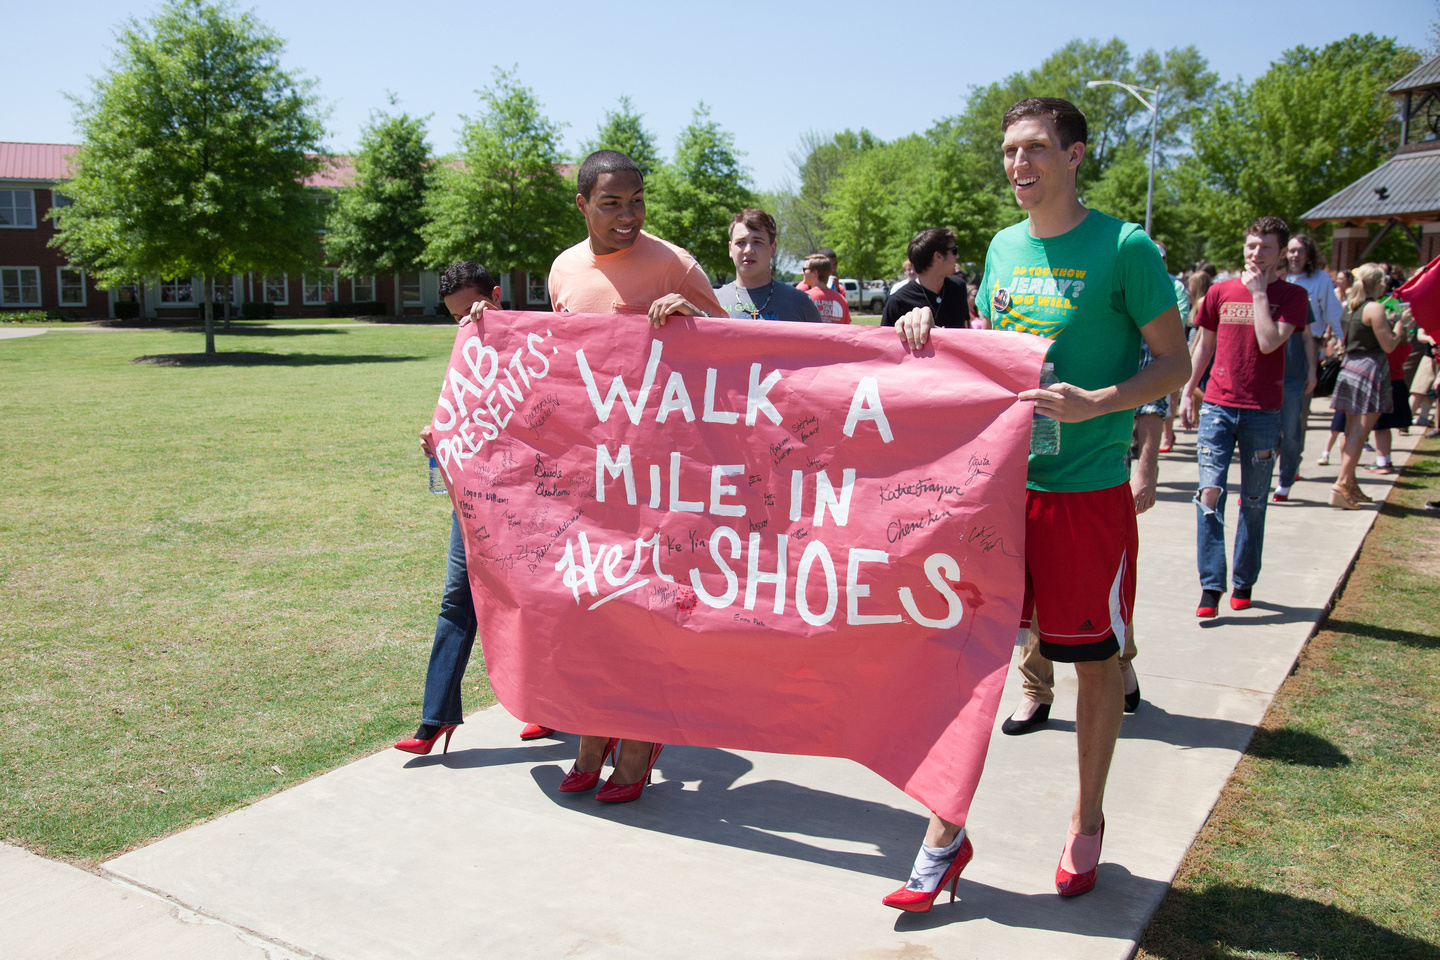 Walk a mile in her shoes men walking for rally photo